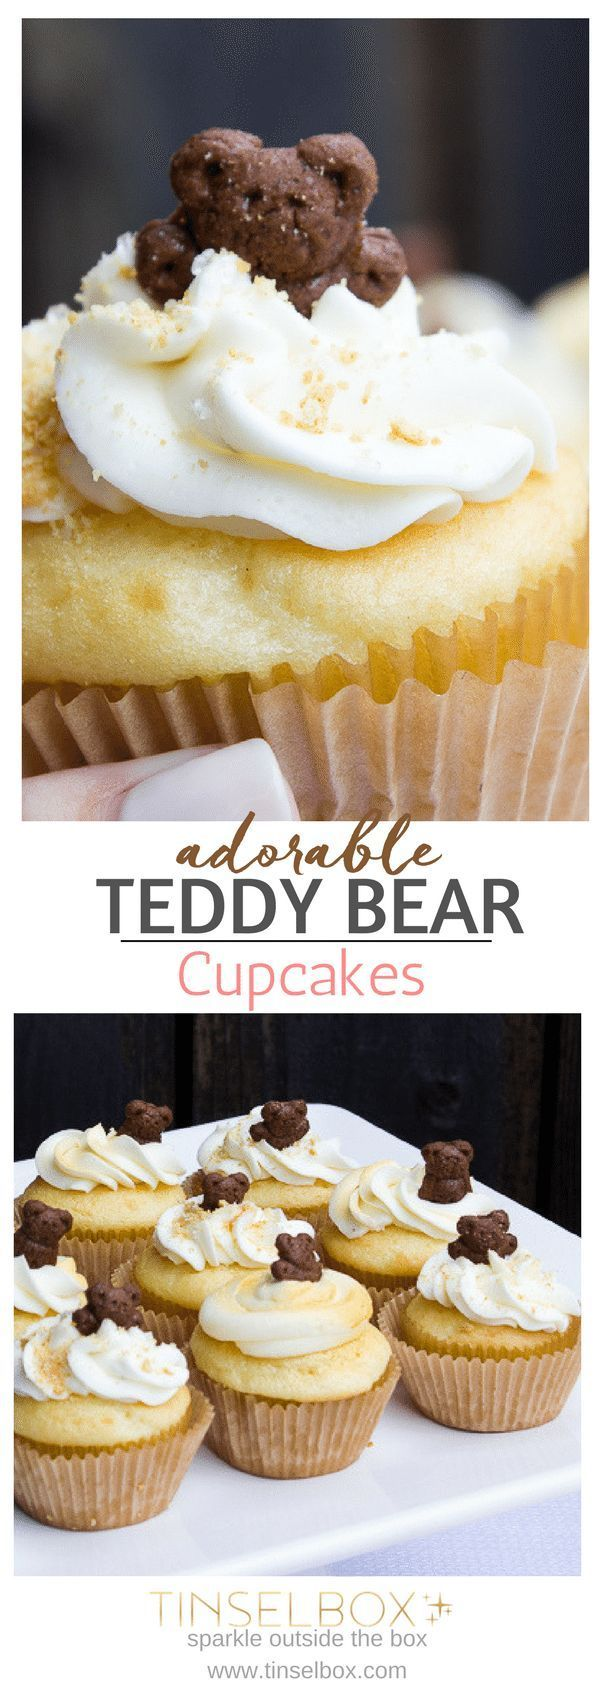 Adorable Teddy Bear Vanilla Cupcakes. These moist cupcakes with buttercream frosting are perfect for a Teddy Bear Picnic party theme or a camping themed birthday party.  Simple, easy and delicious.